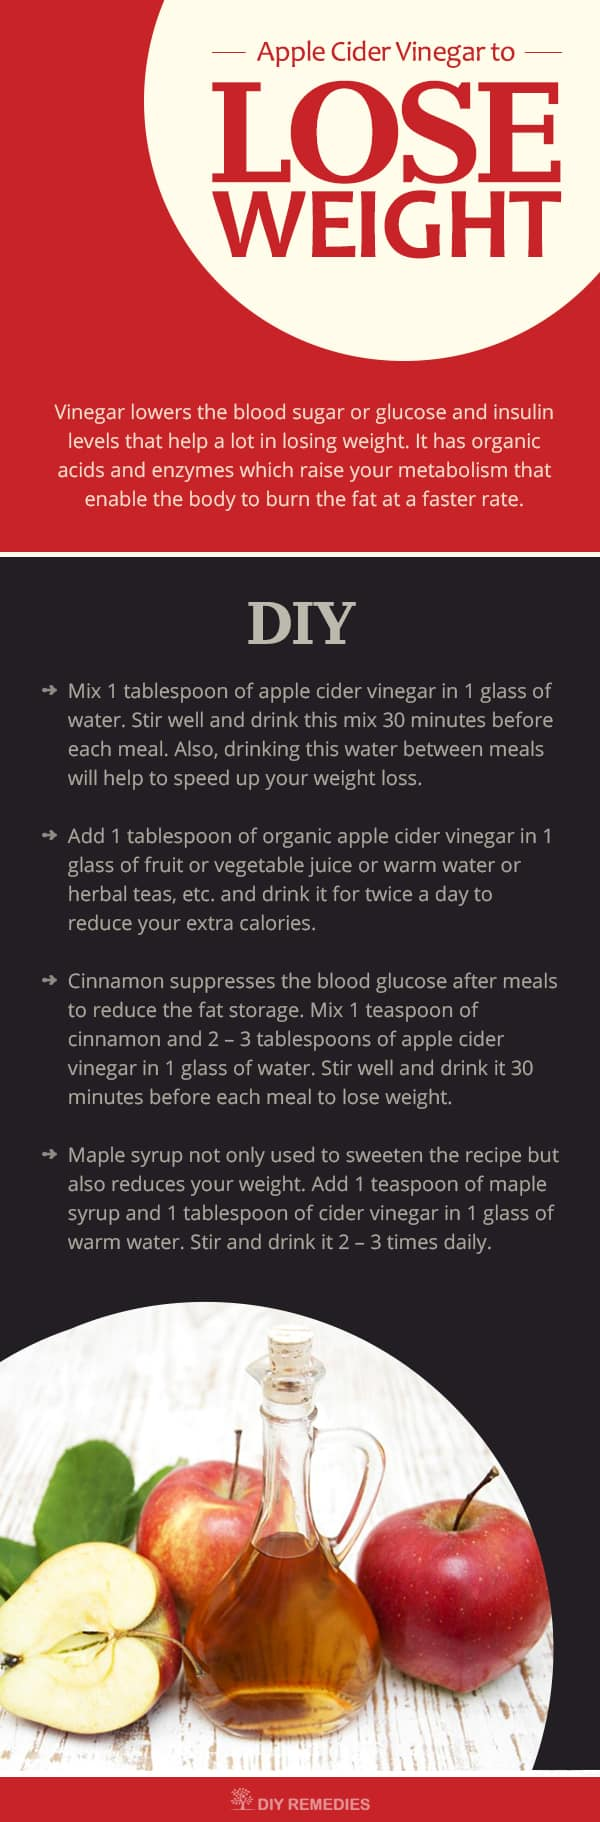 Apple cinnamon vinegar weight loss